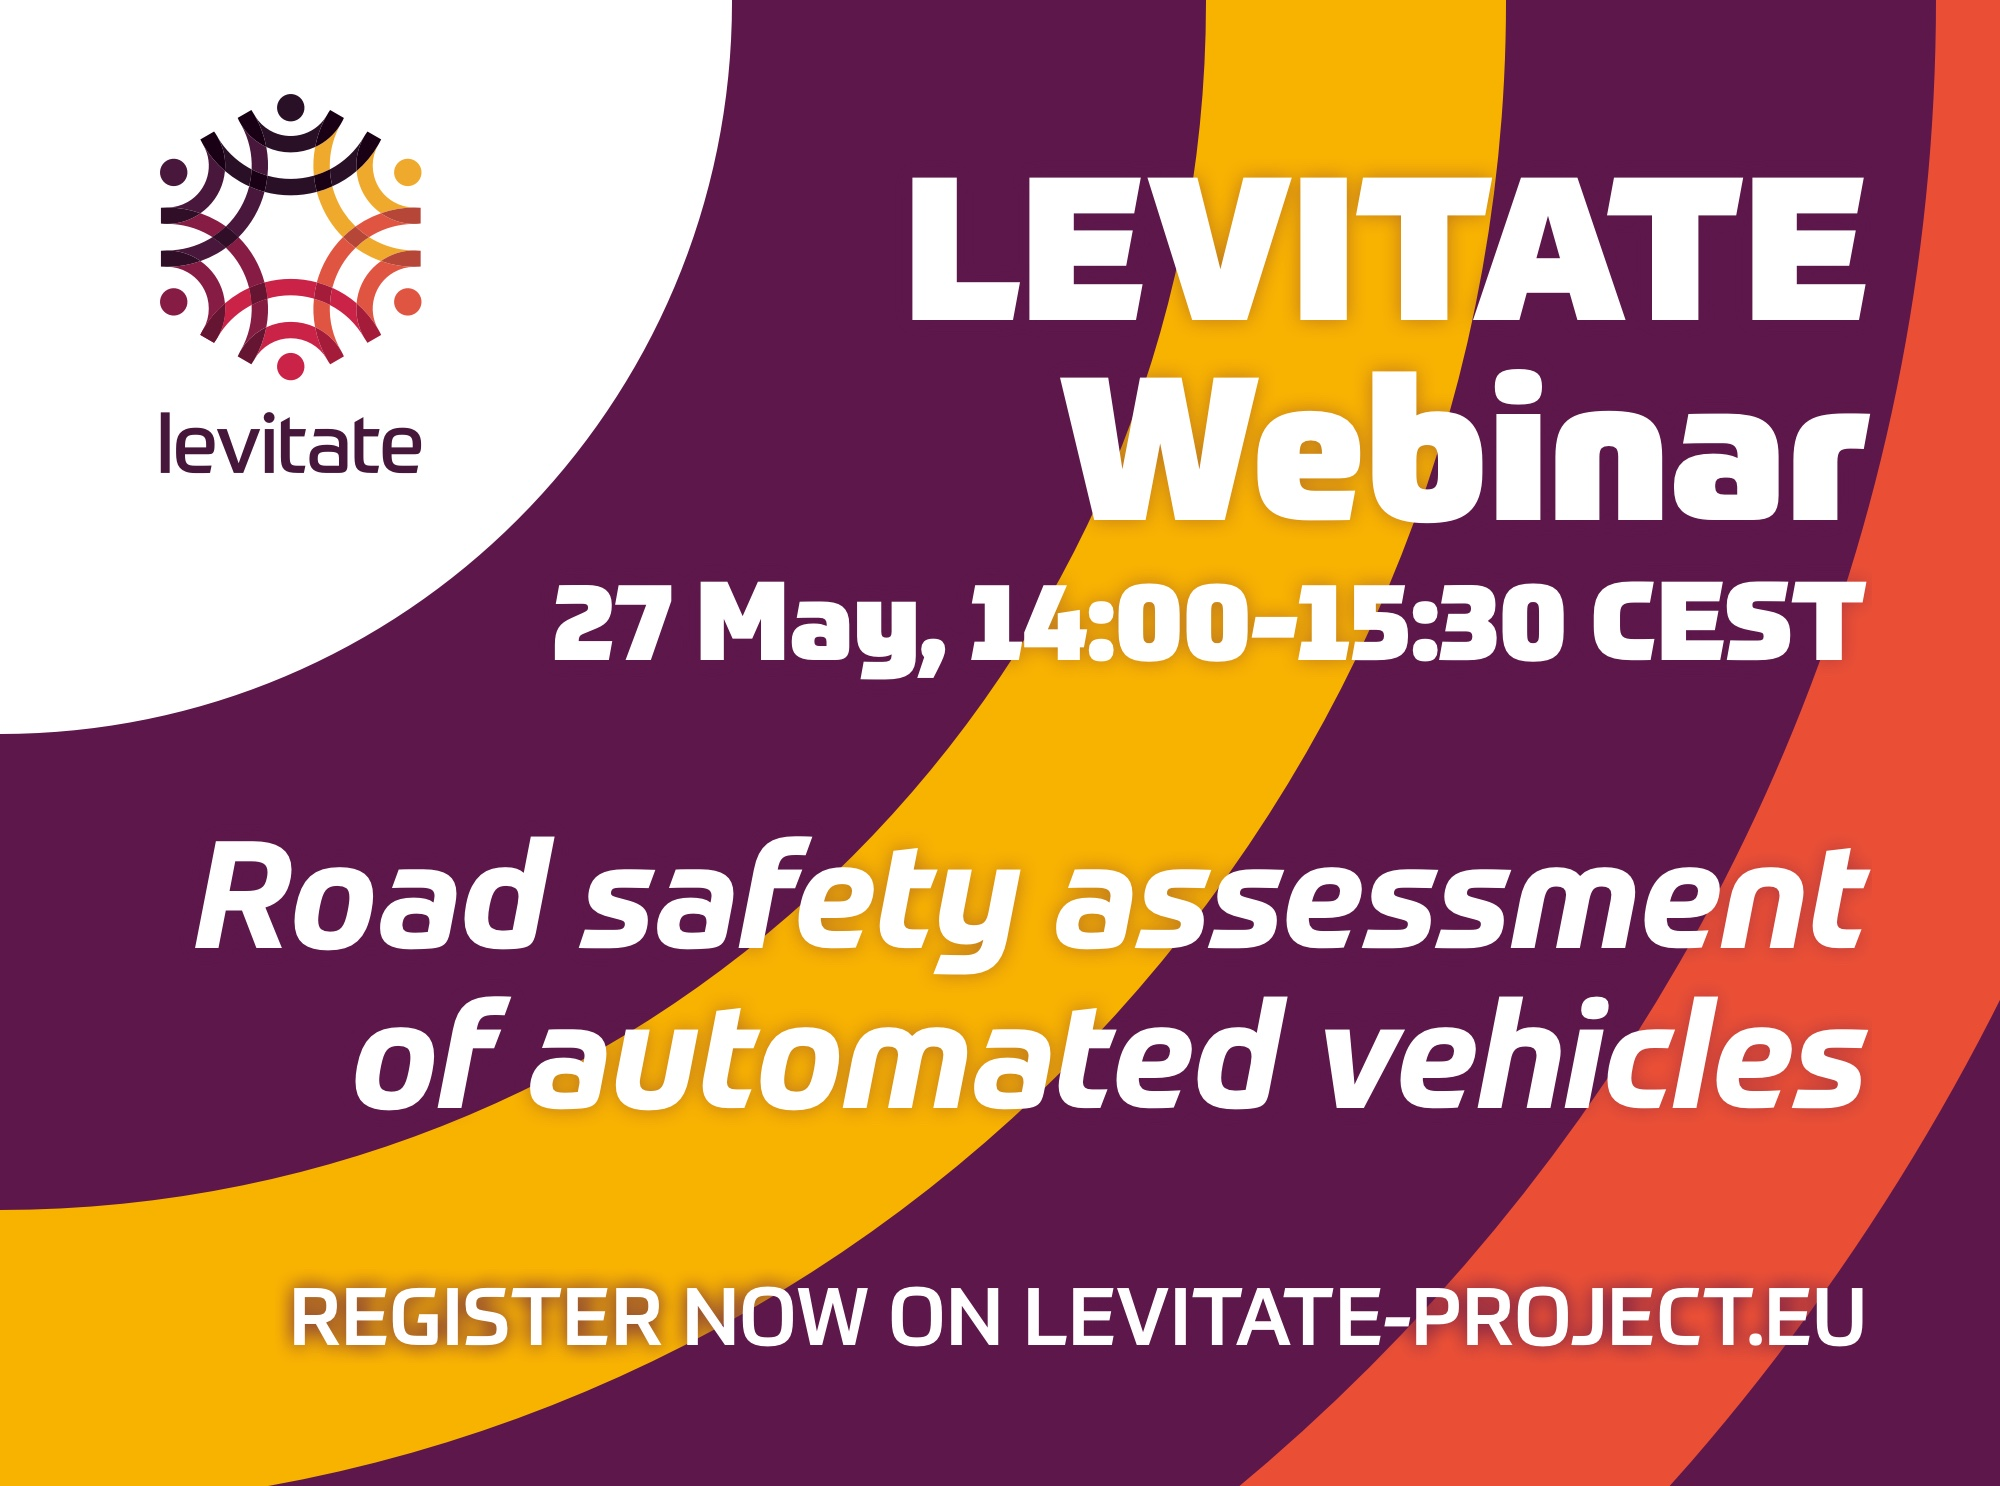 LEVITATE webinar – Road safety assessment of automated vehicles